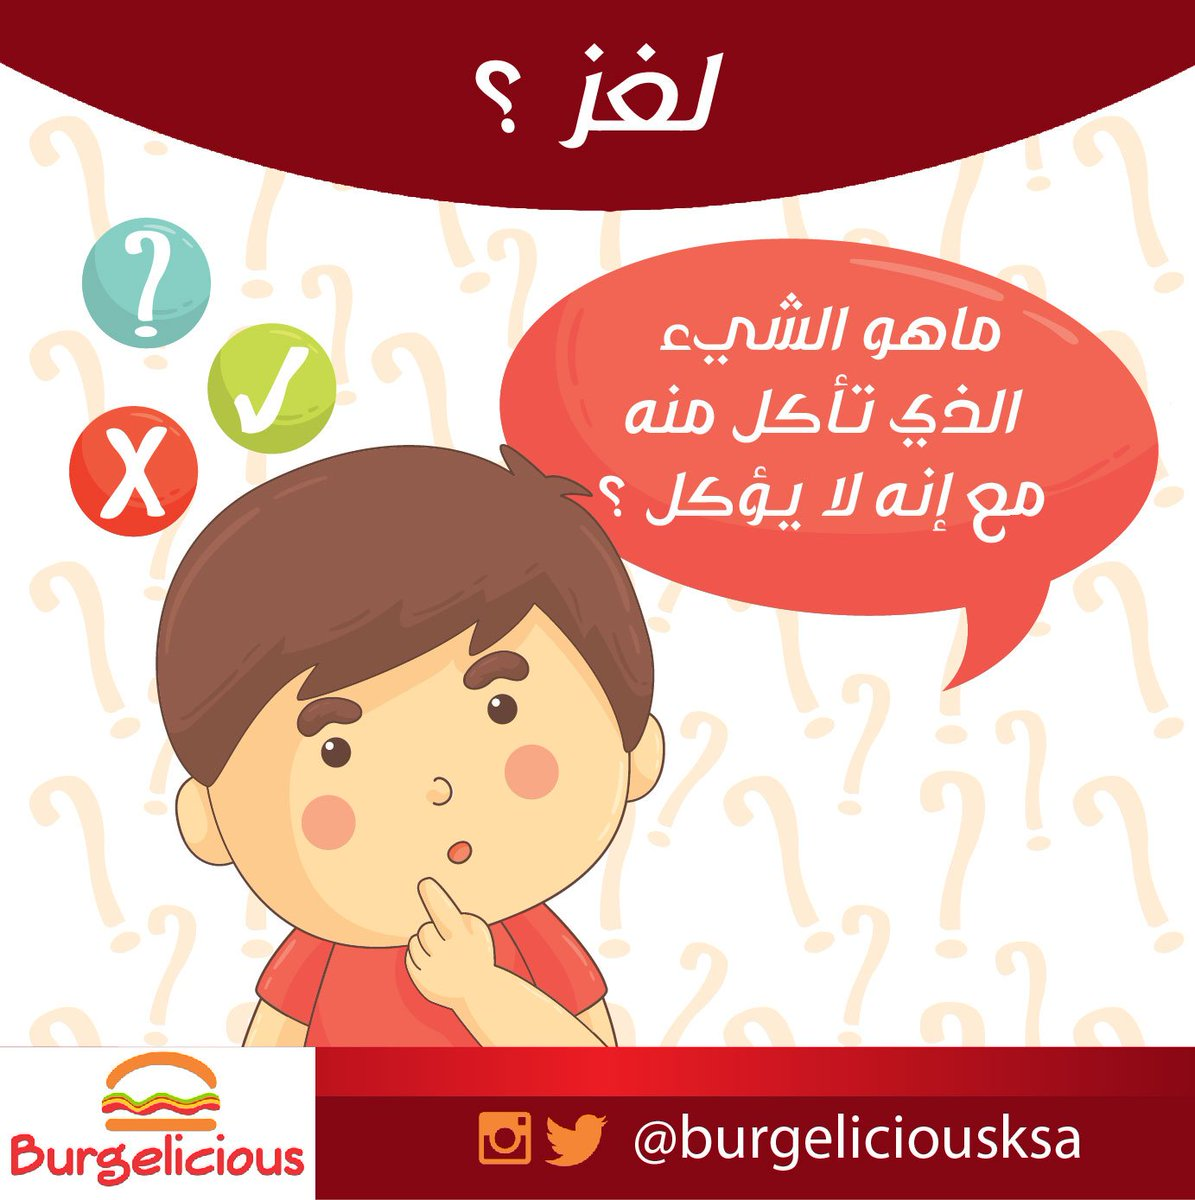 Burgelicious On Twitter ايش هو الشي اللي تاكل منه مع انه